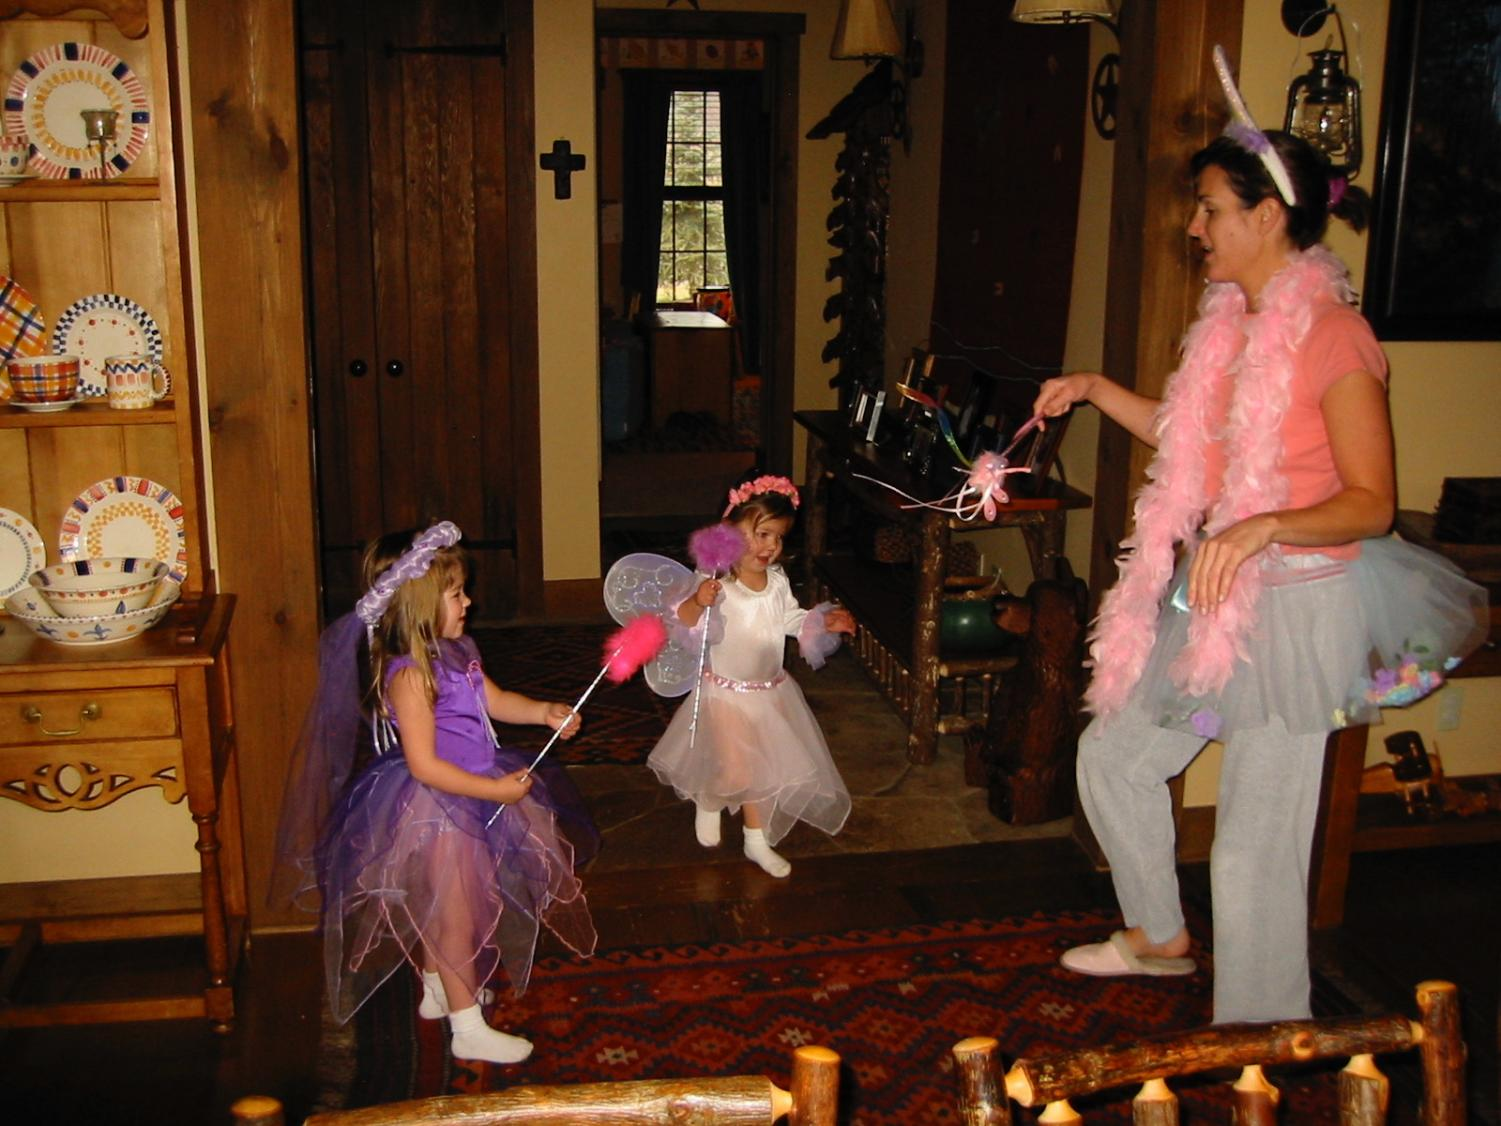 Mother of two, Kristin Yeary, dancing in a full fairy costume just to please her daughters.